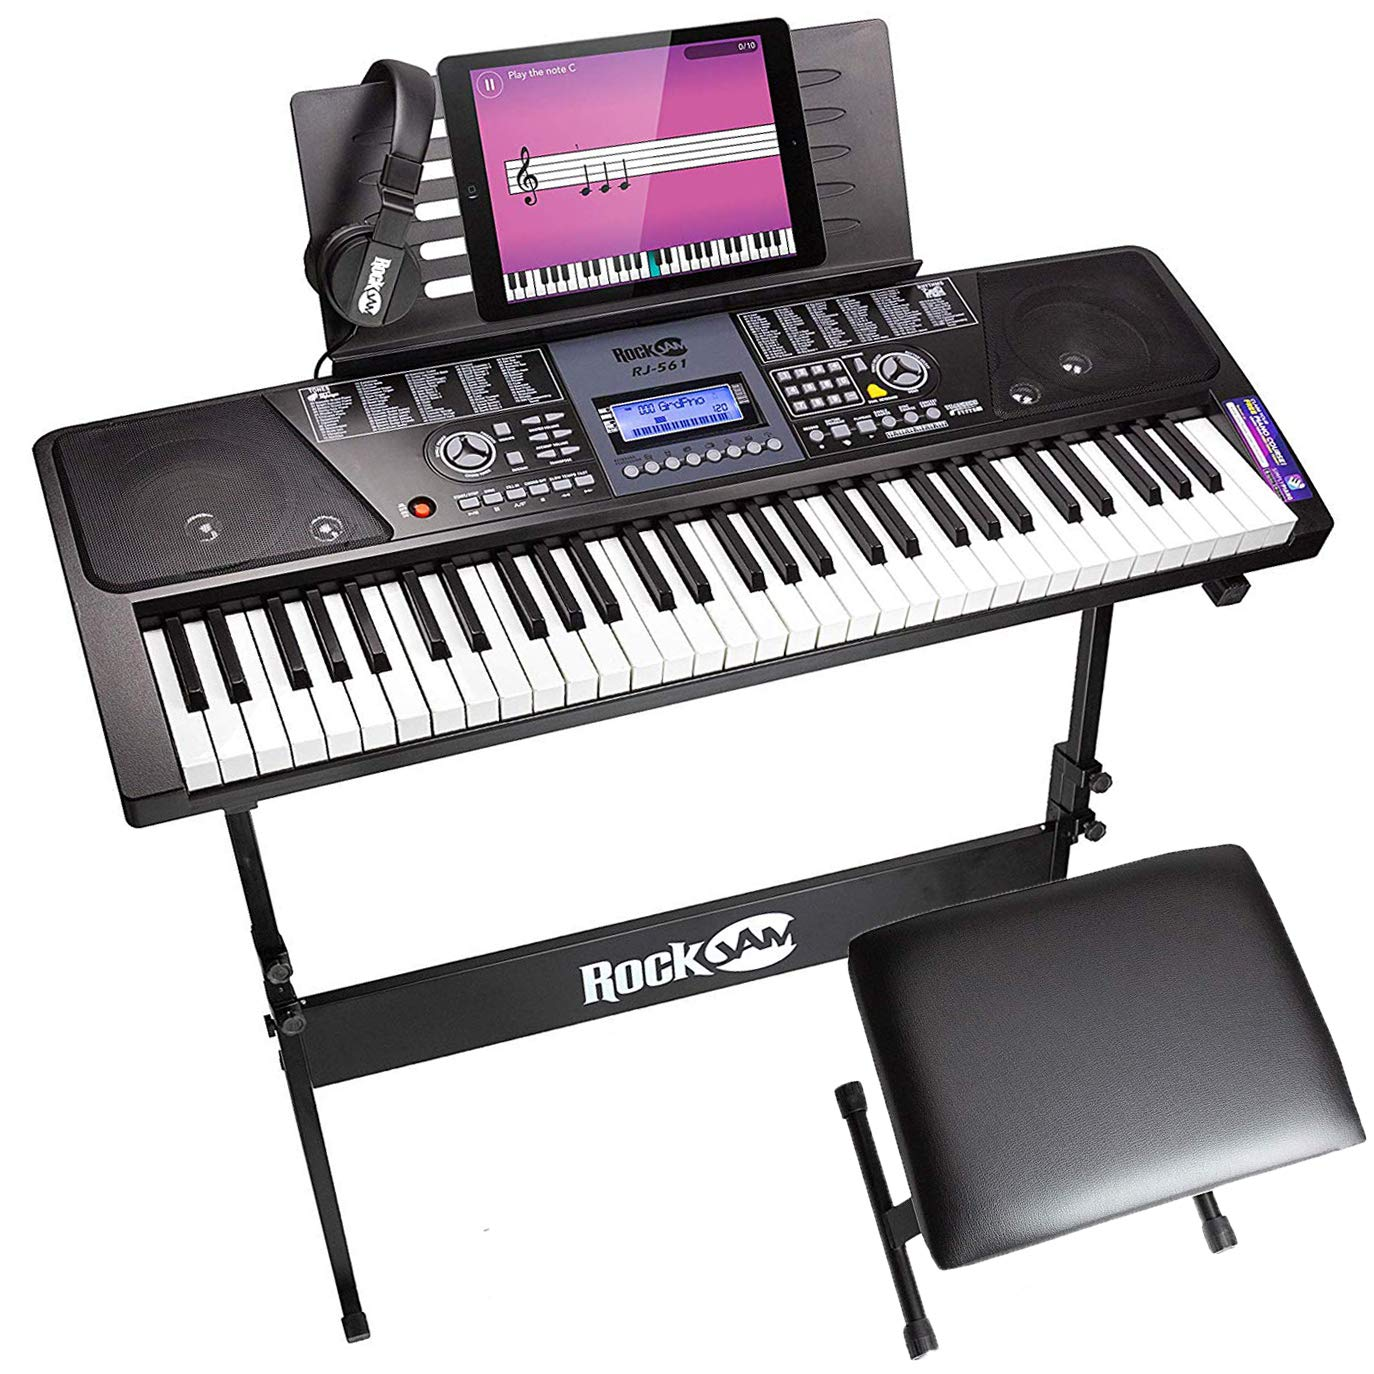 RockJam Keyboard Piano